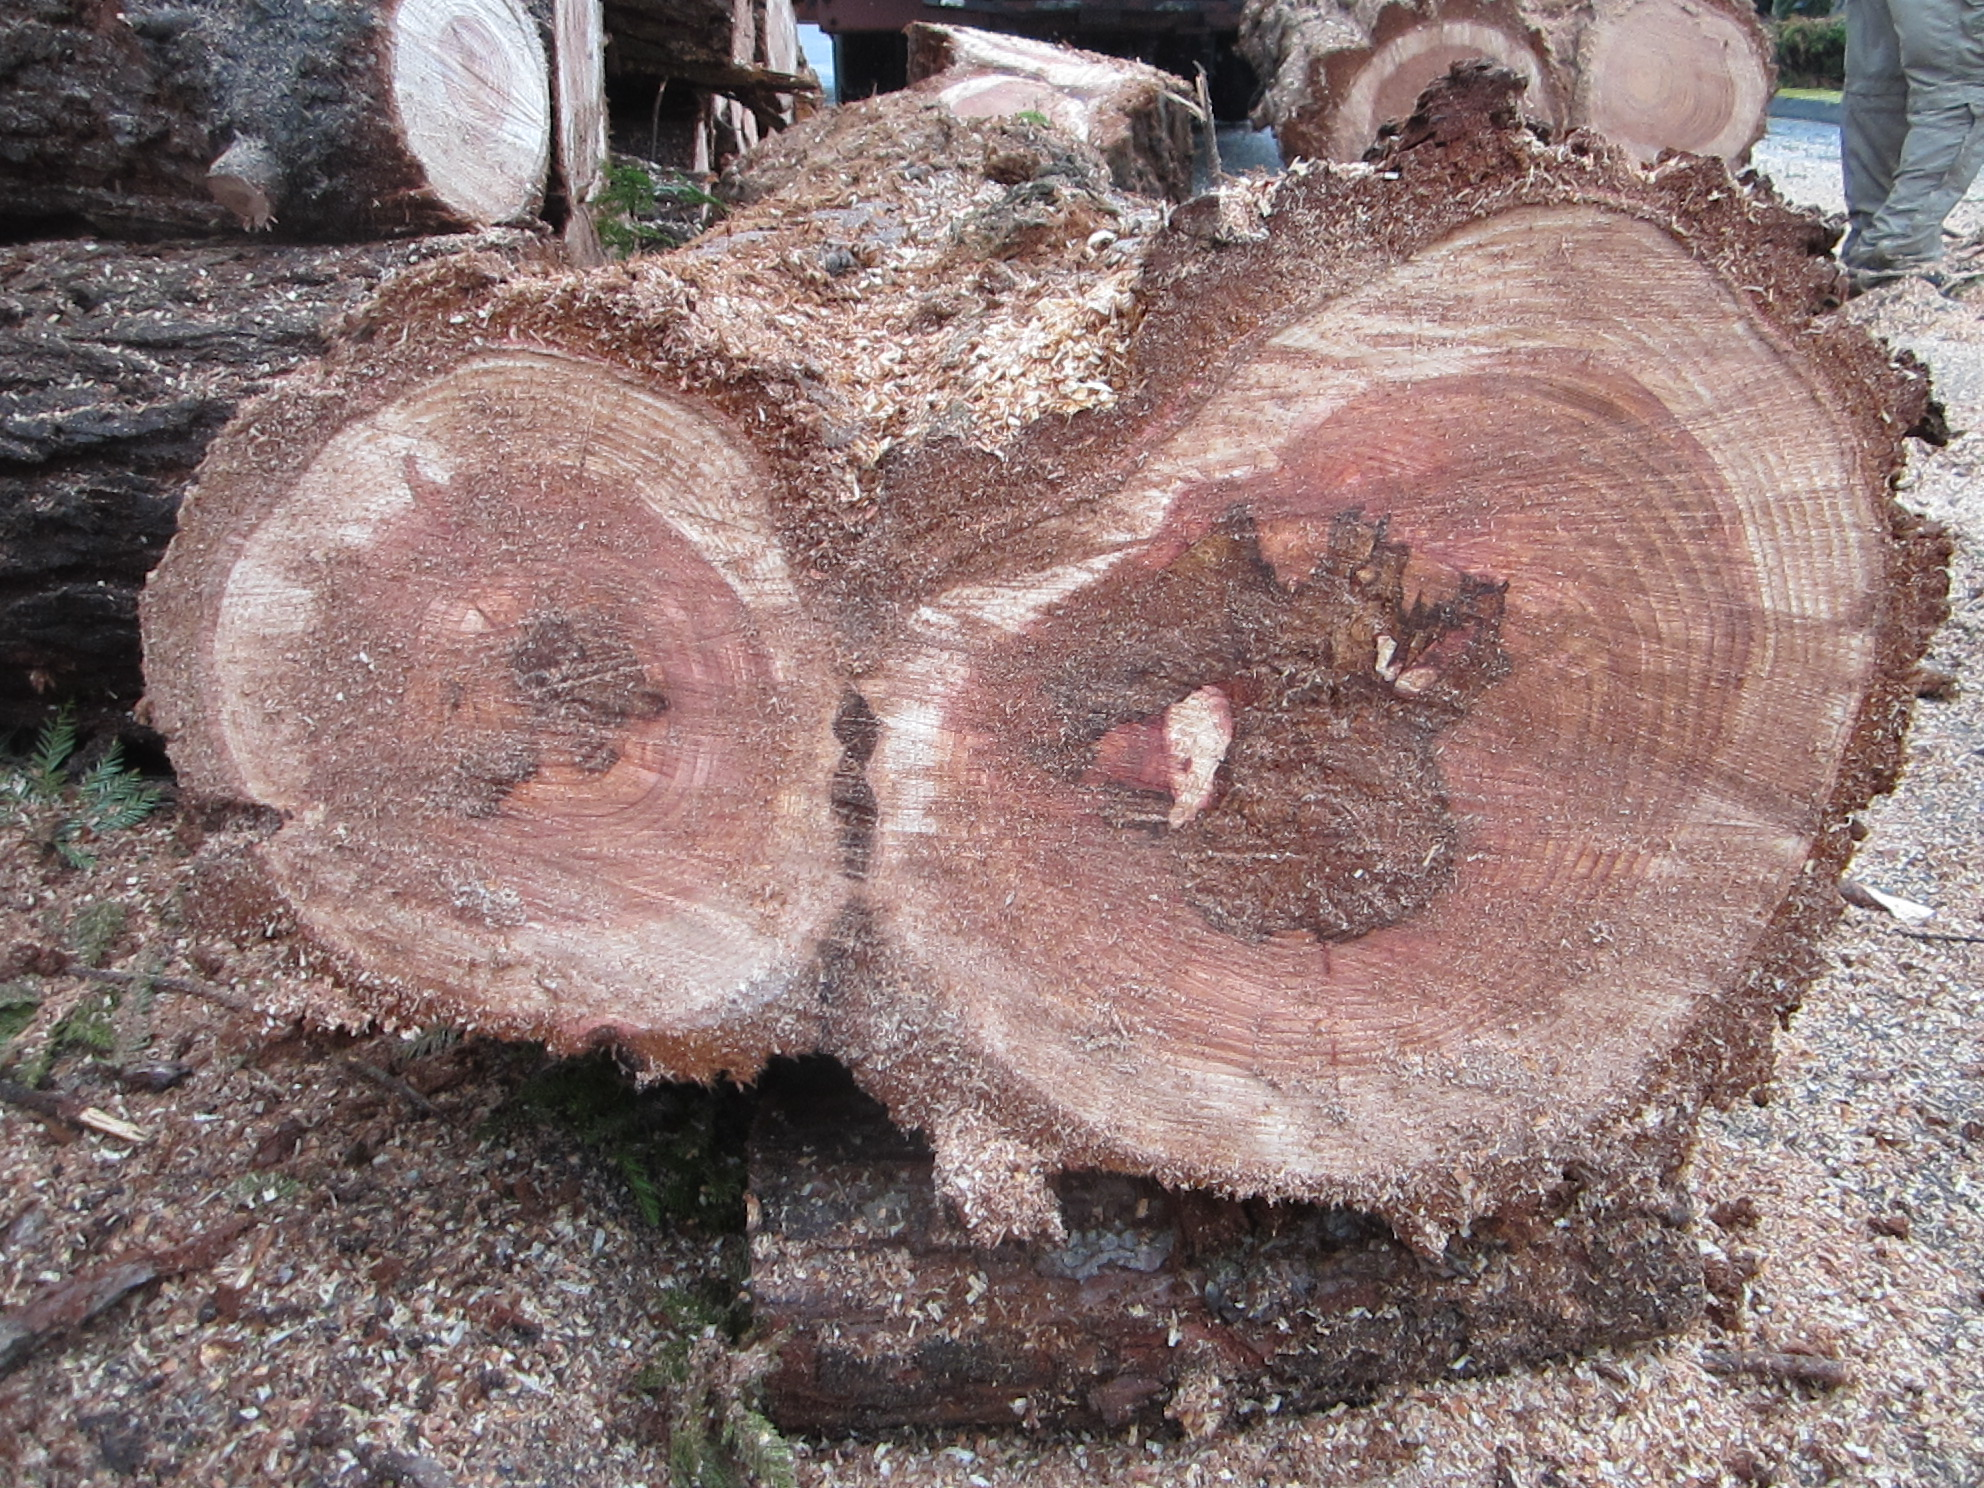 Brown spongy root rot being walled off in costal redwood